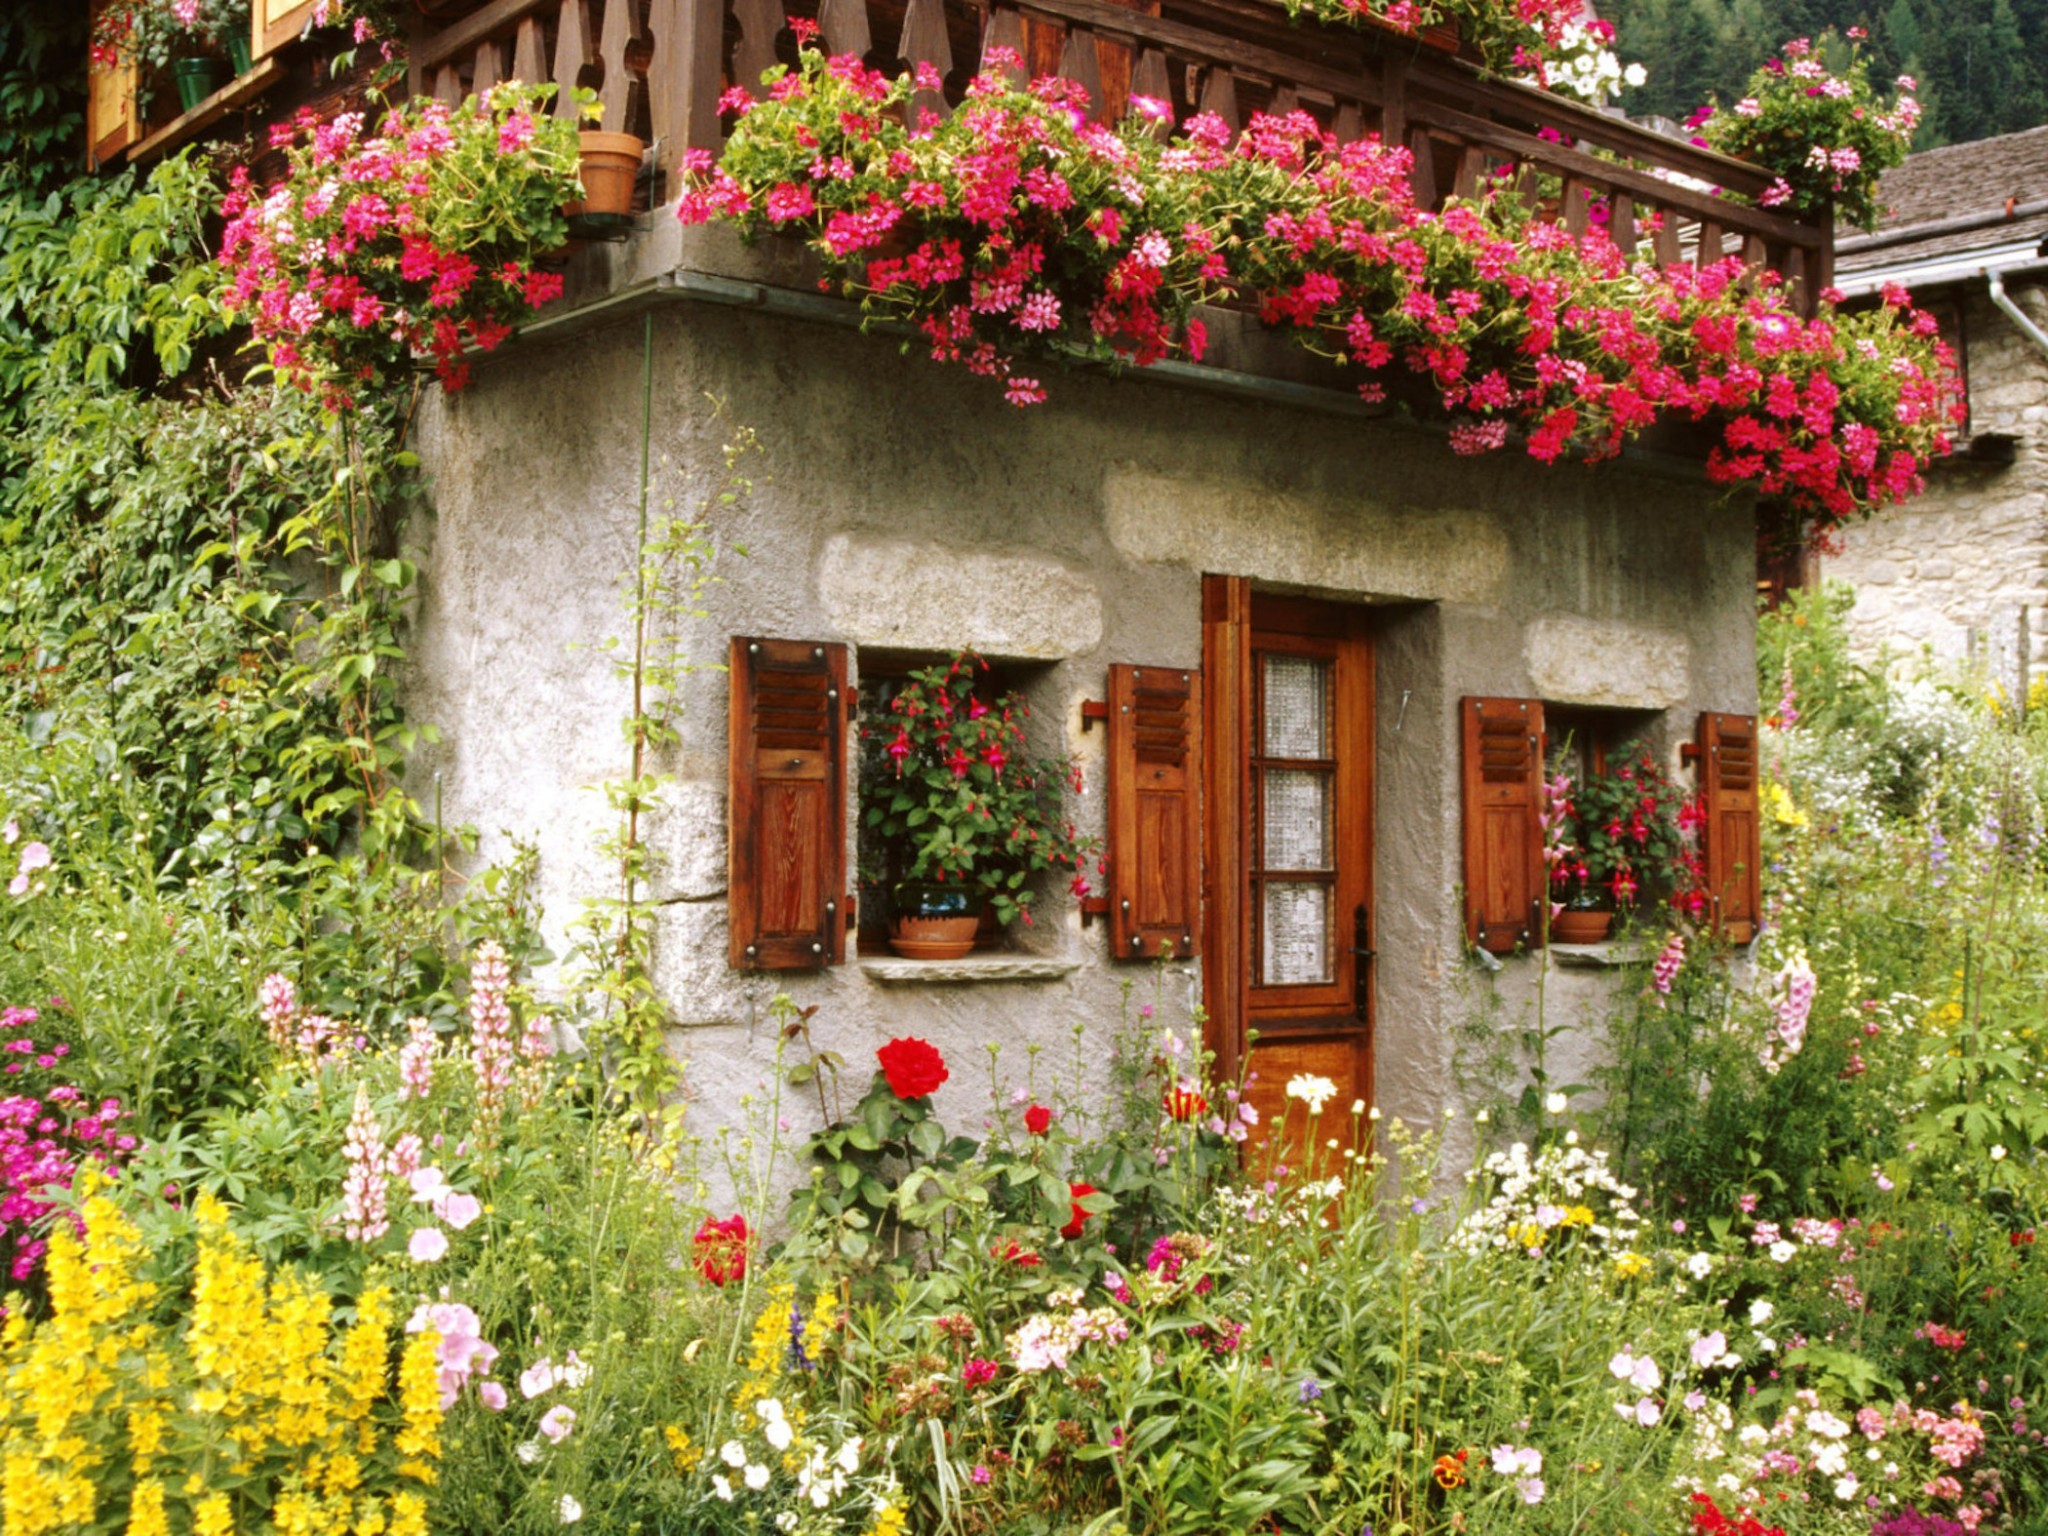 Lovely english cottage garden wallpaper free downloads for Wallpaper home and garden